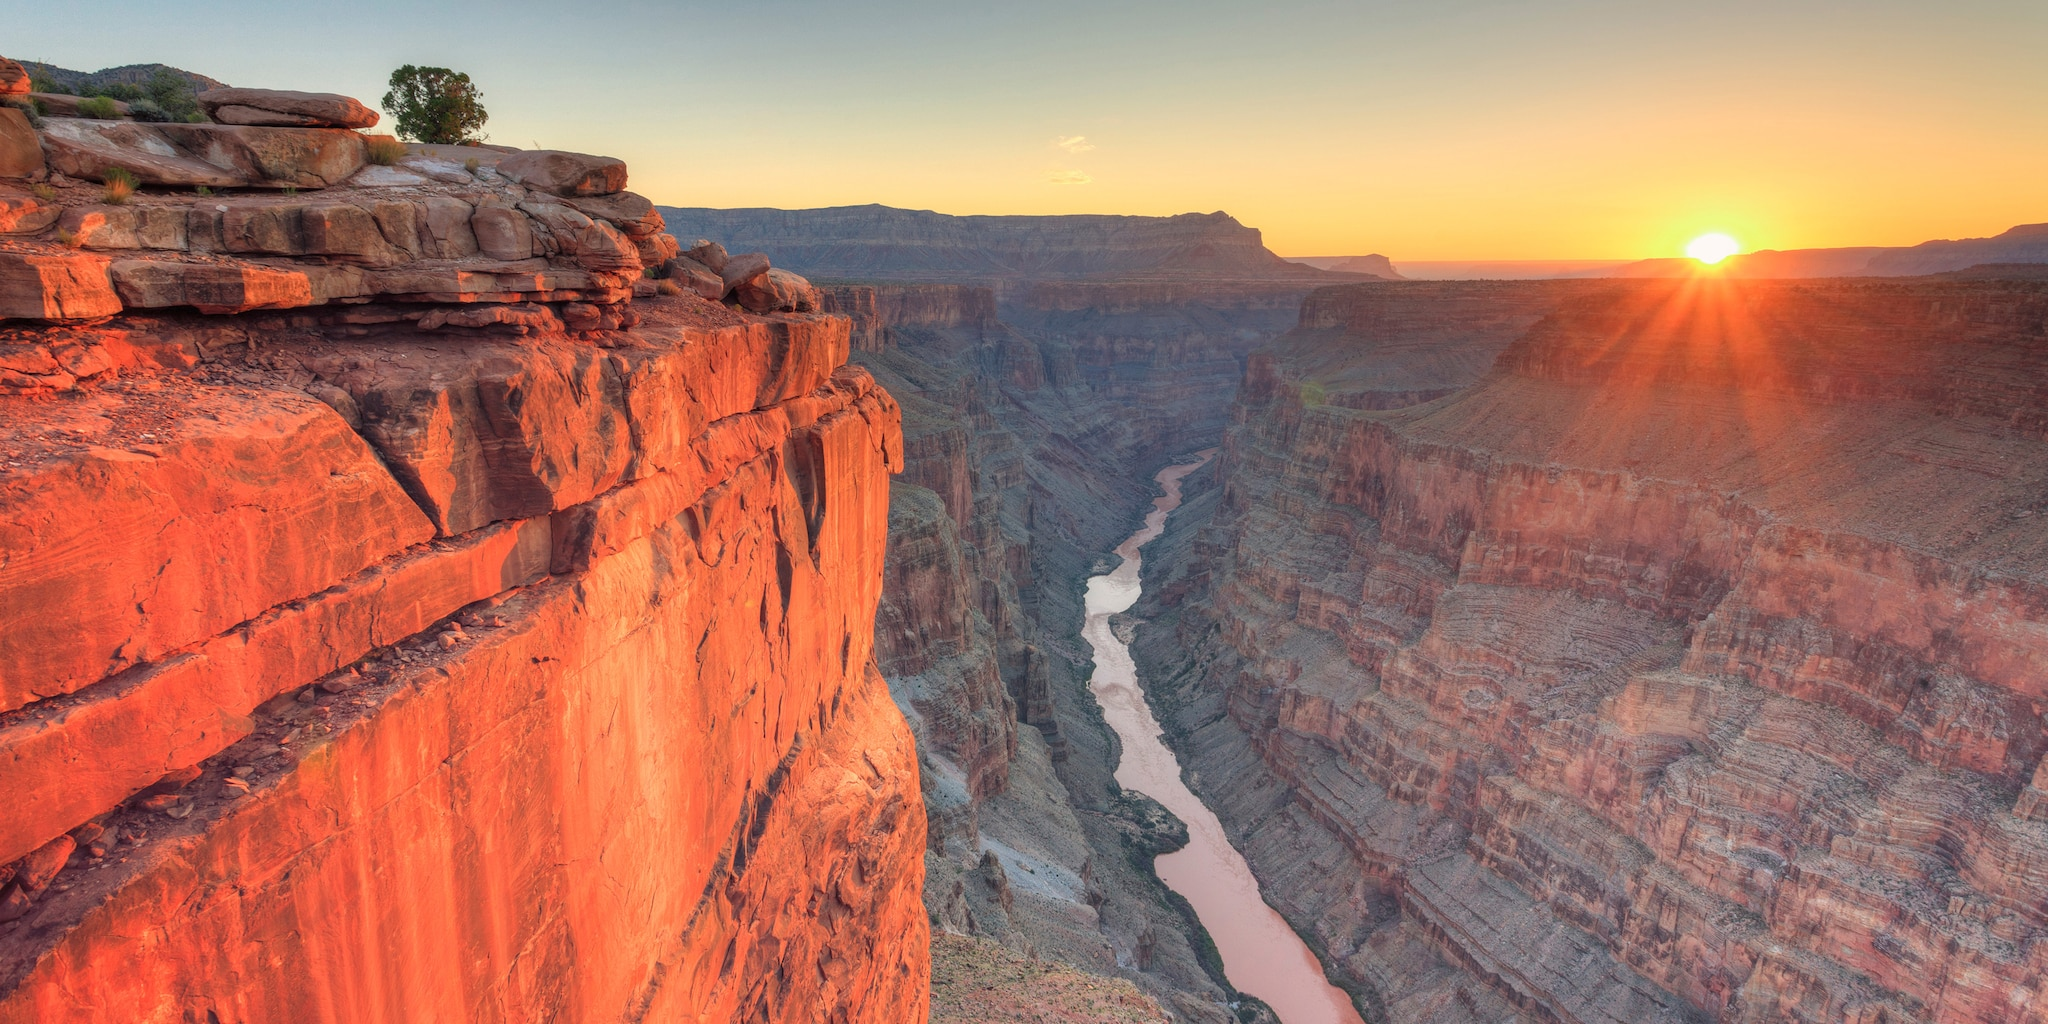 A river runs between canyon walls at sunset